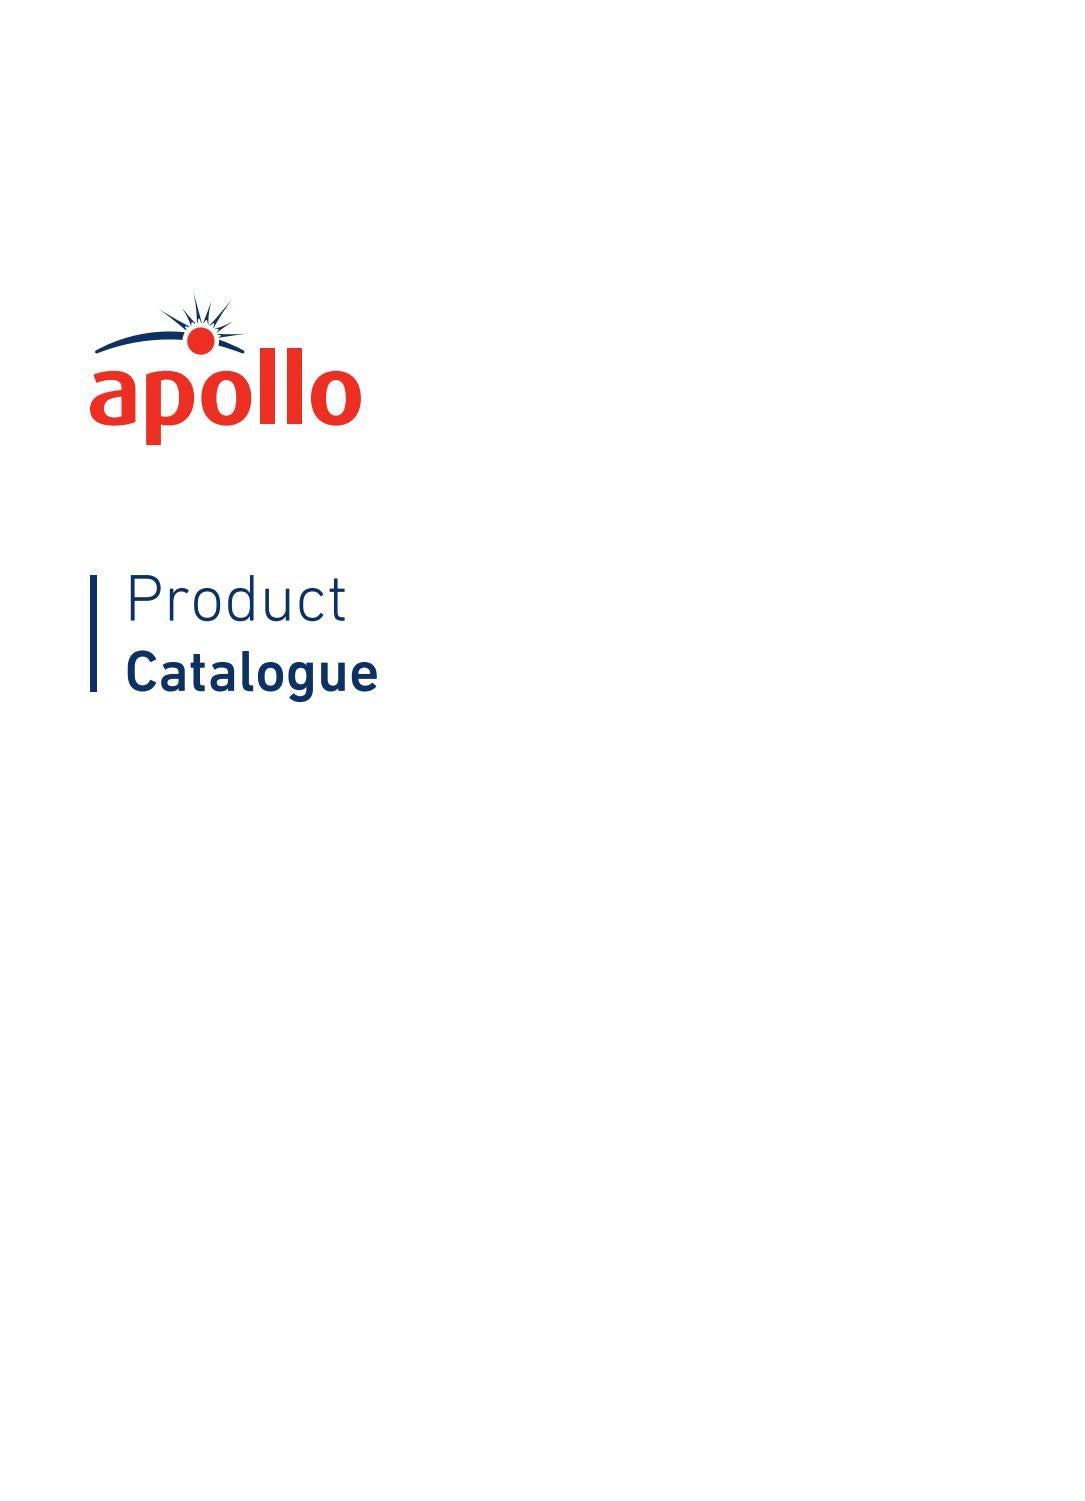 Brochure De Productos Apollo By Out Fire S A Issuu